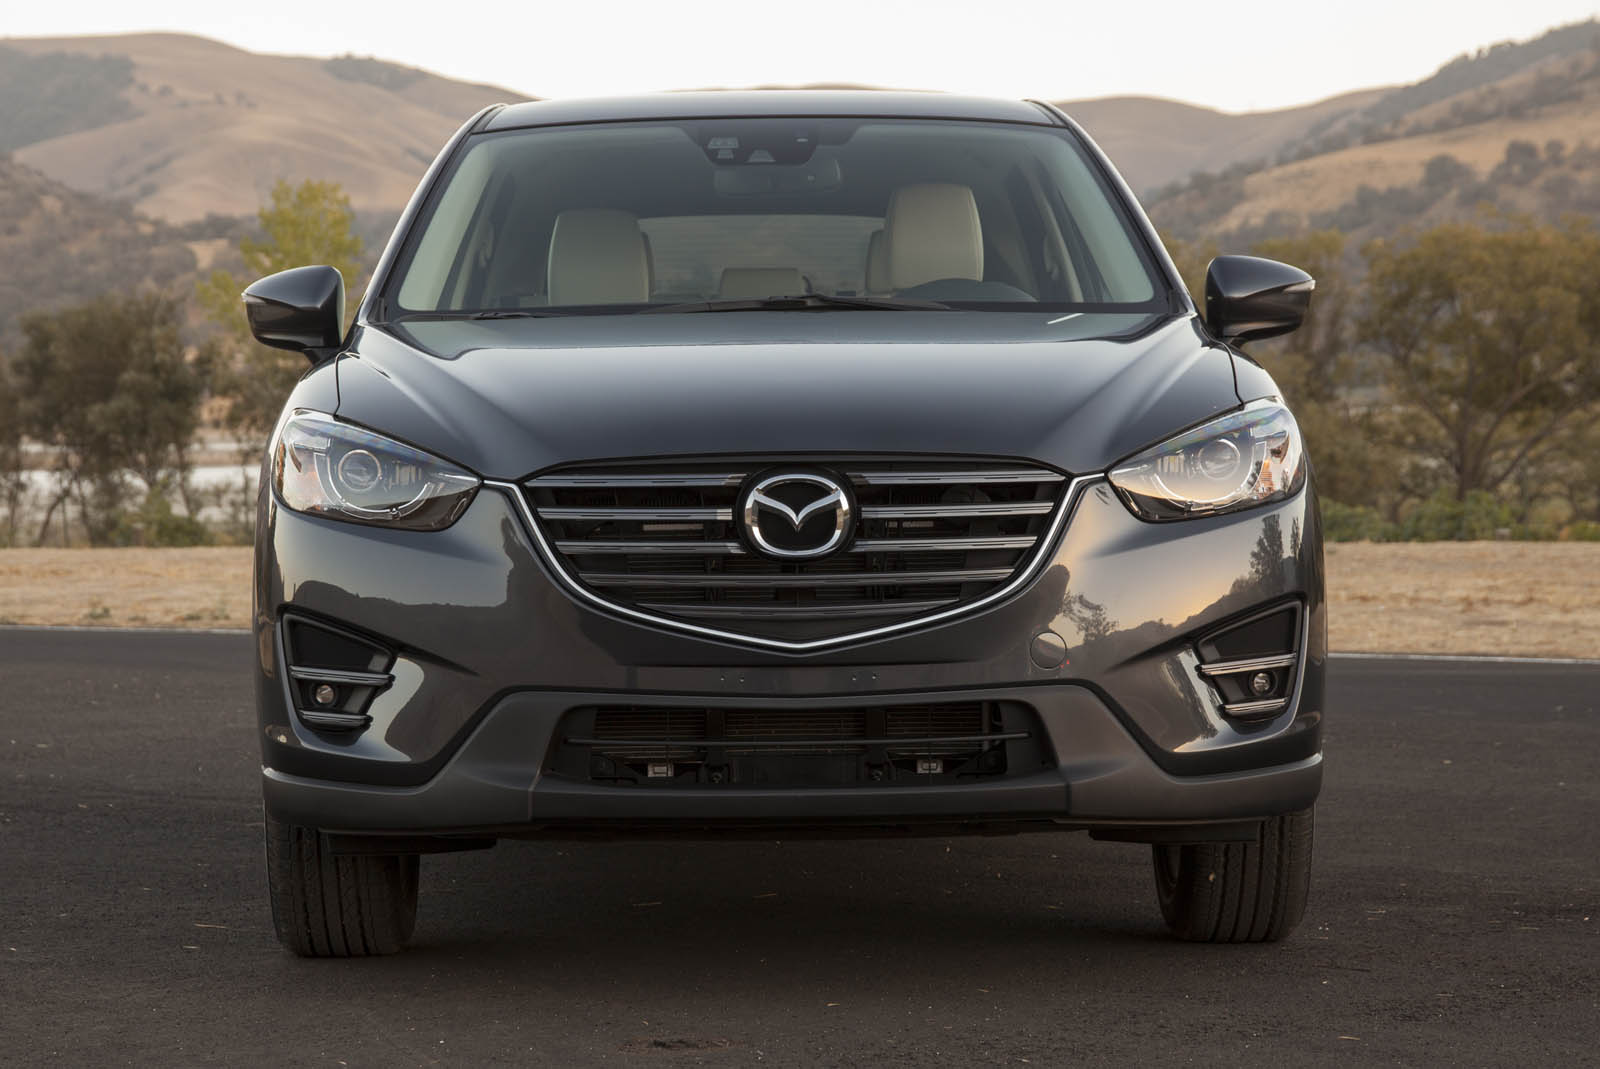 Mazda Makes The Safest Cars On The Road Says Iihs Carscoops